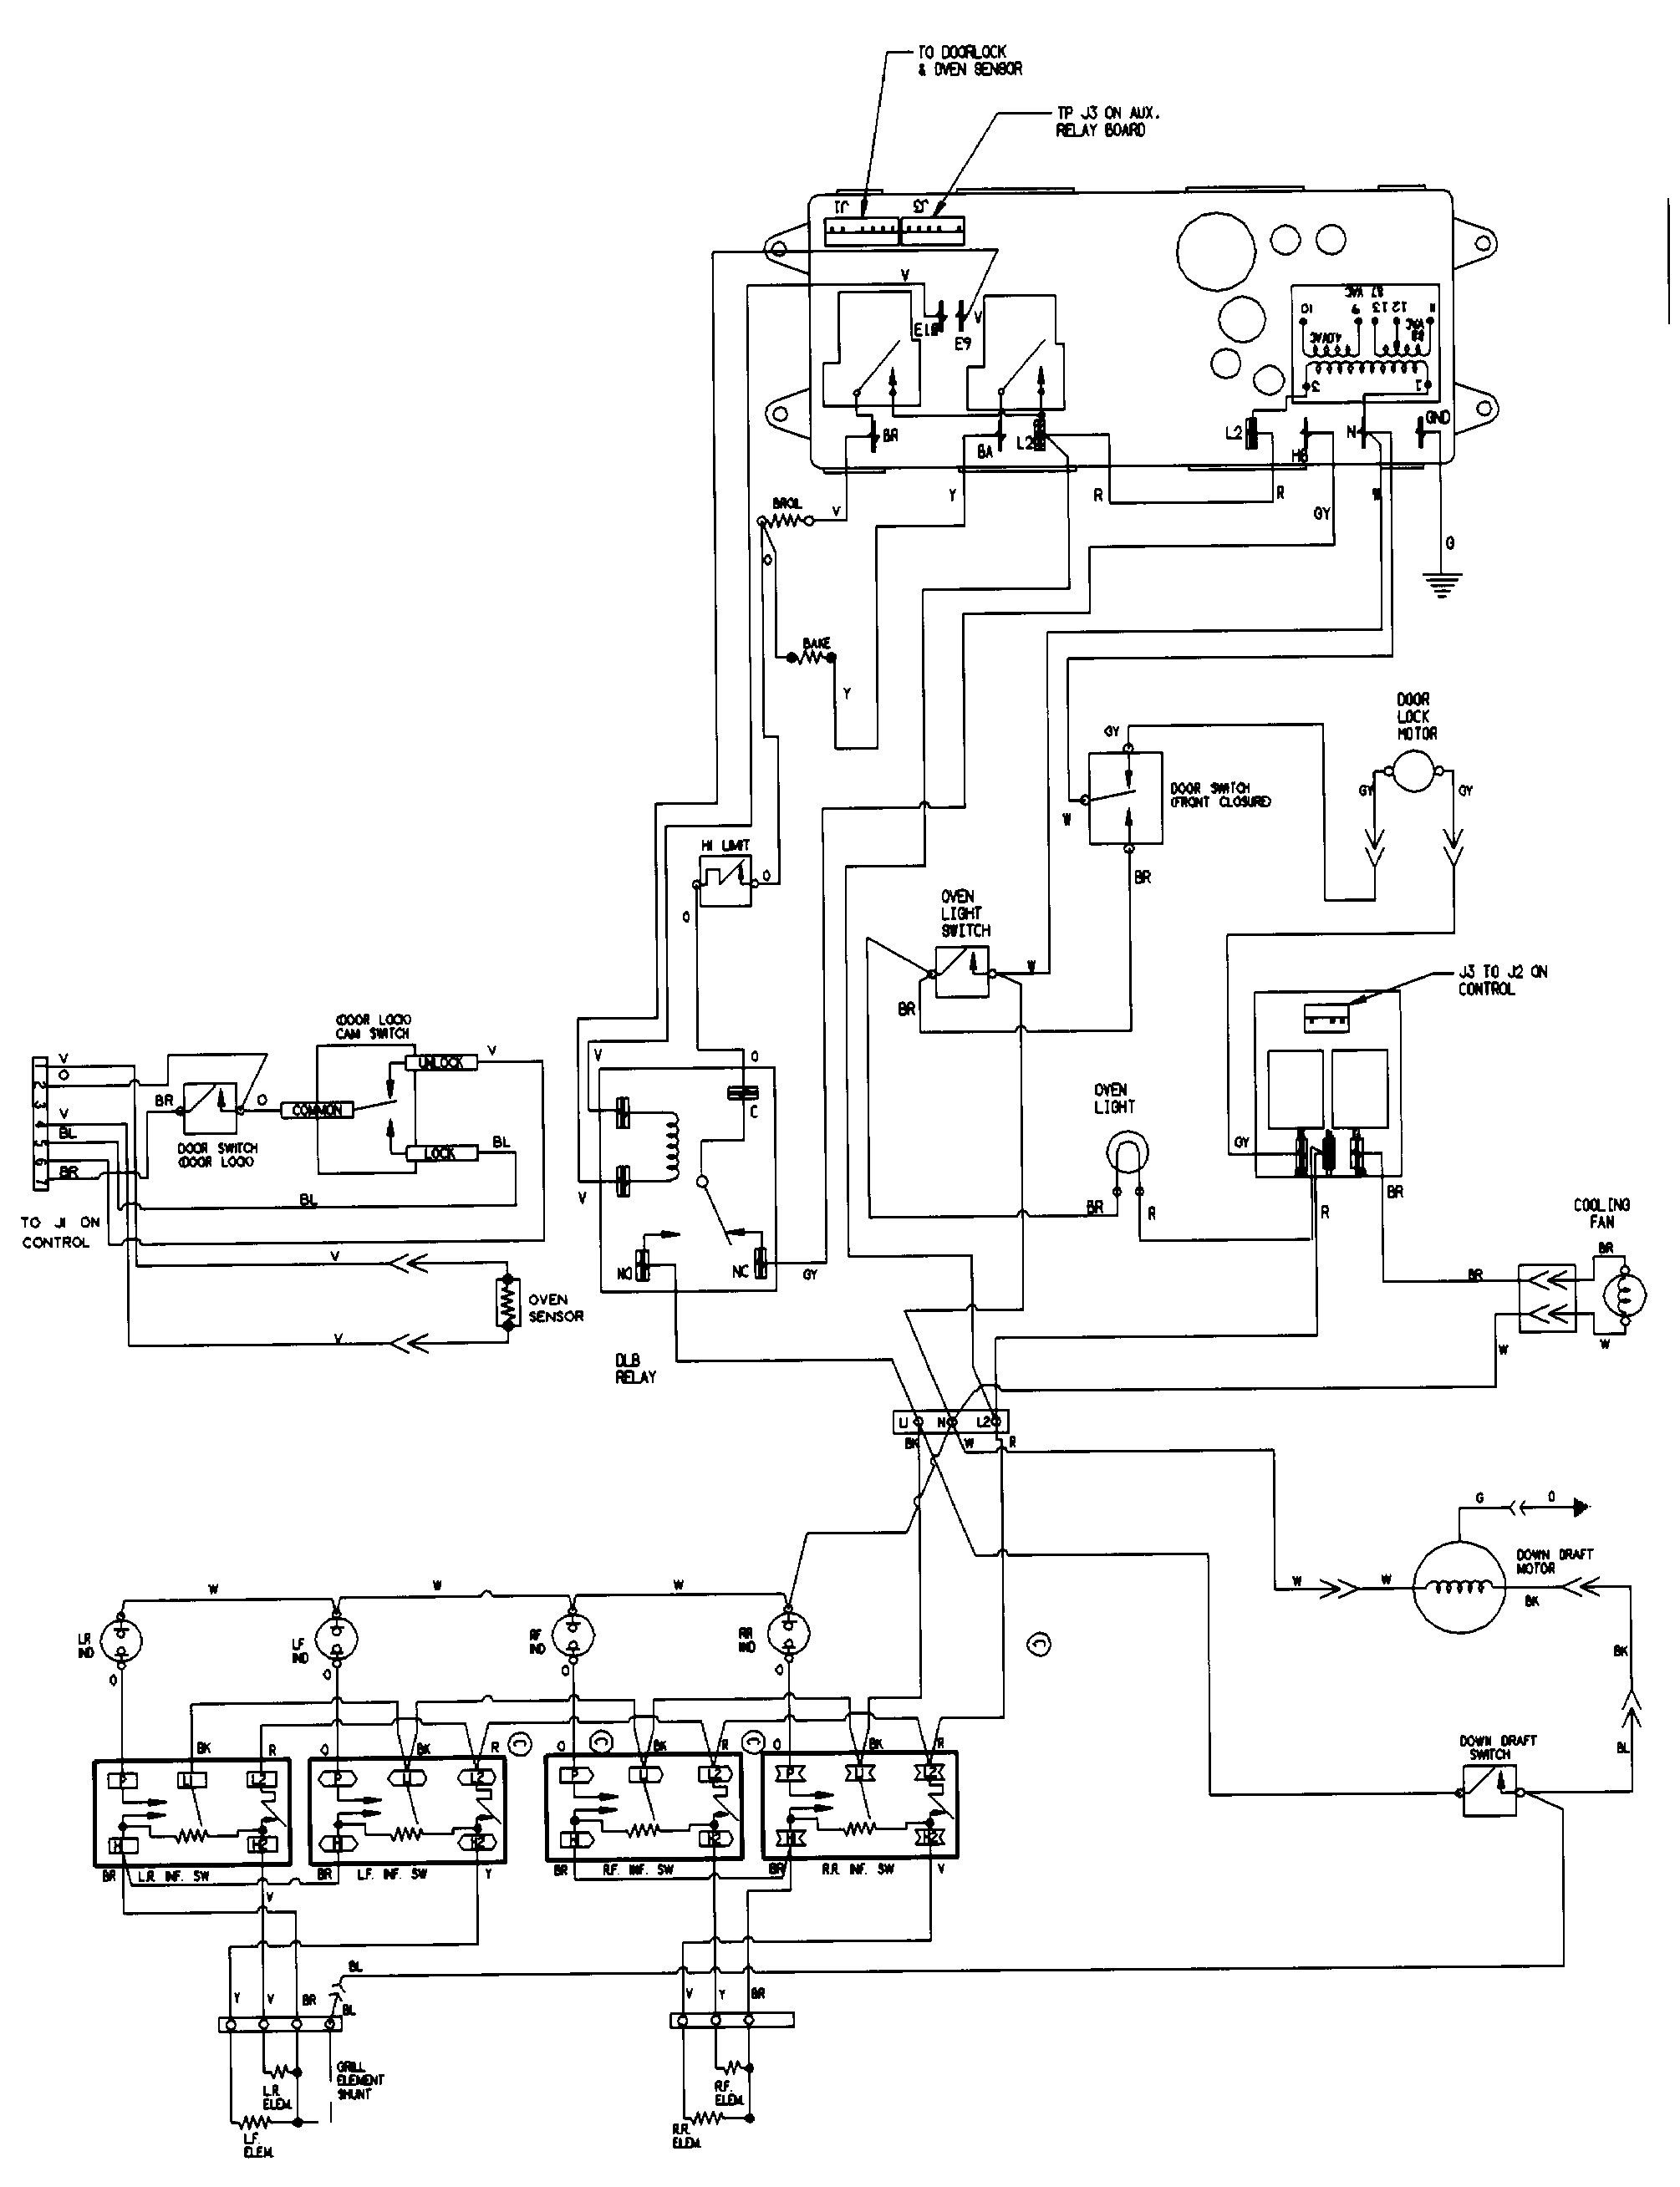 23 Complex Wiring Diagram Online For You With Images